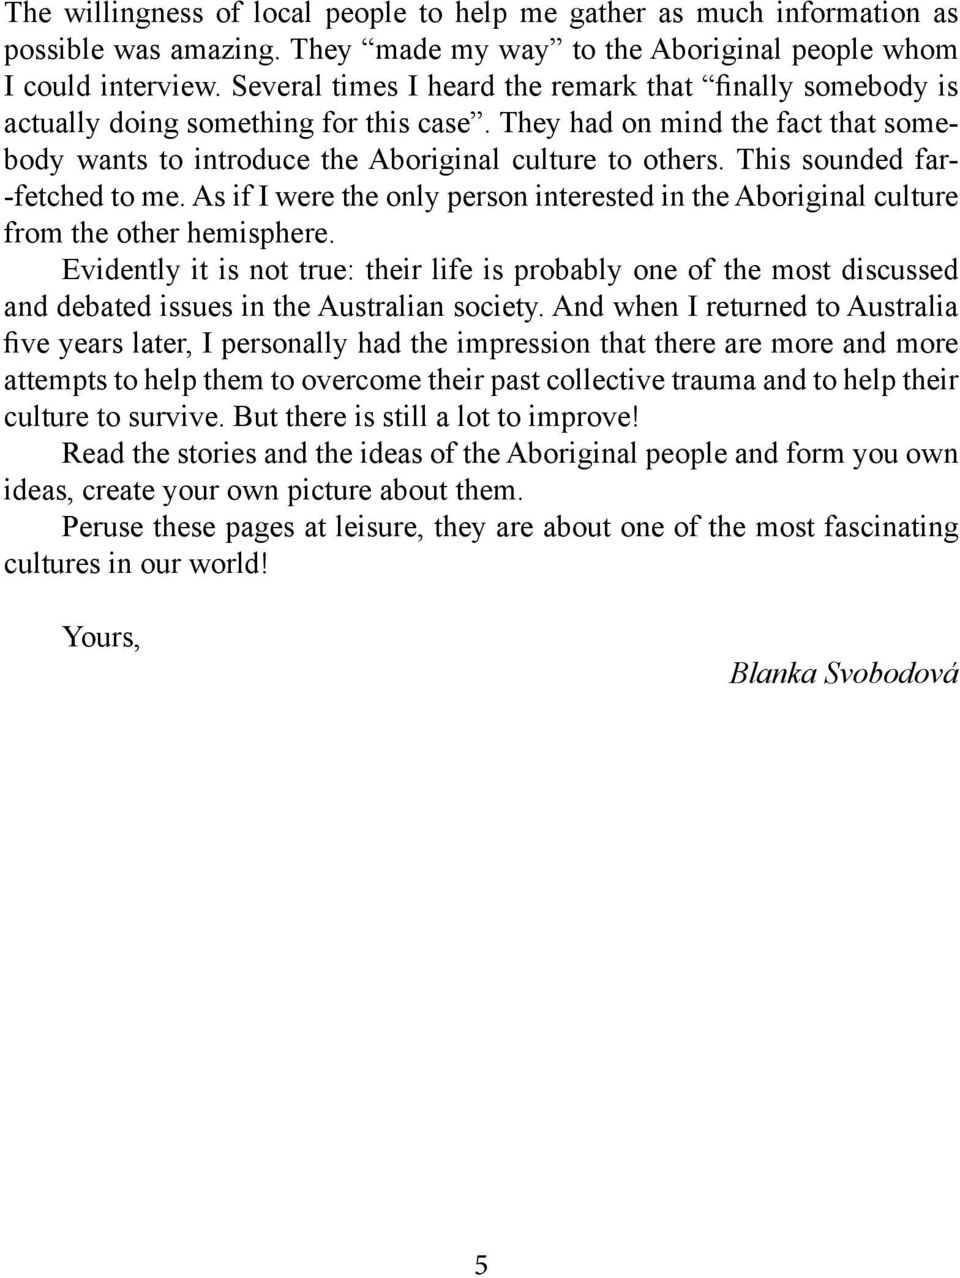 This sounded far- -fetched to me. As if I were the only person interested in the Aboriginal culture from the other hemisphere.